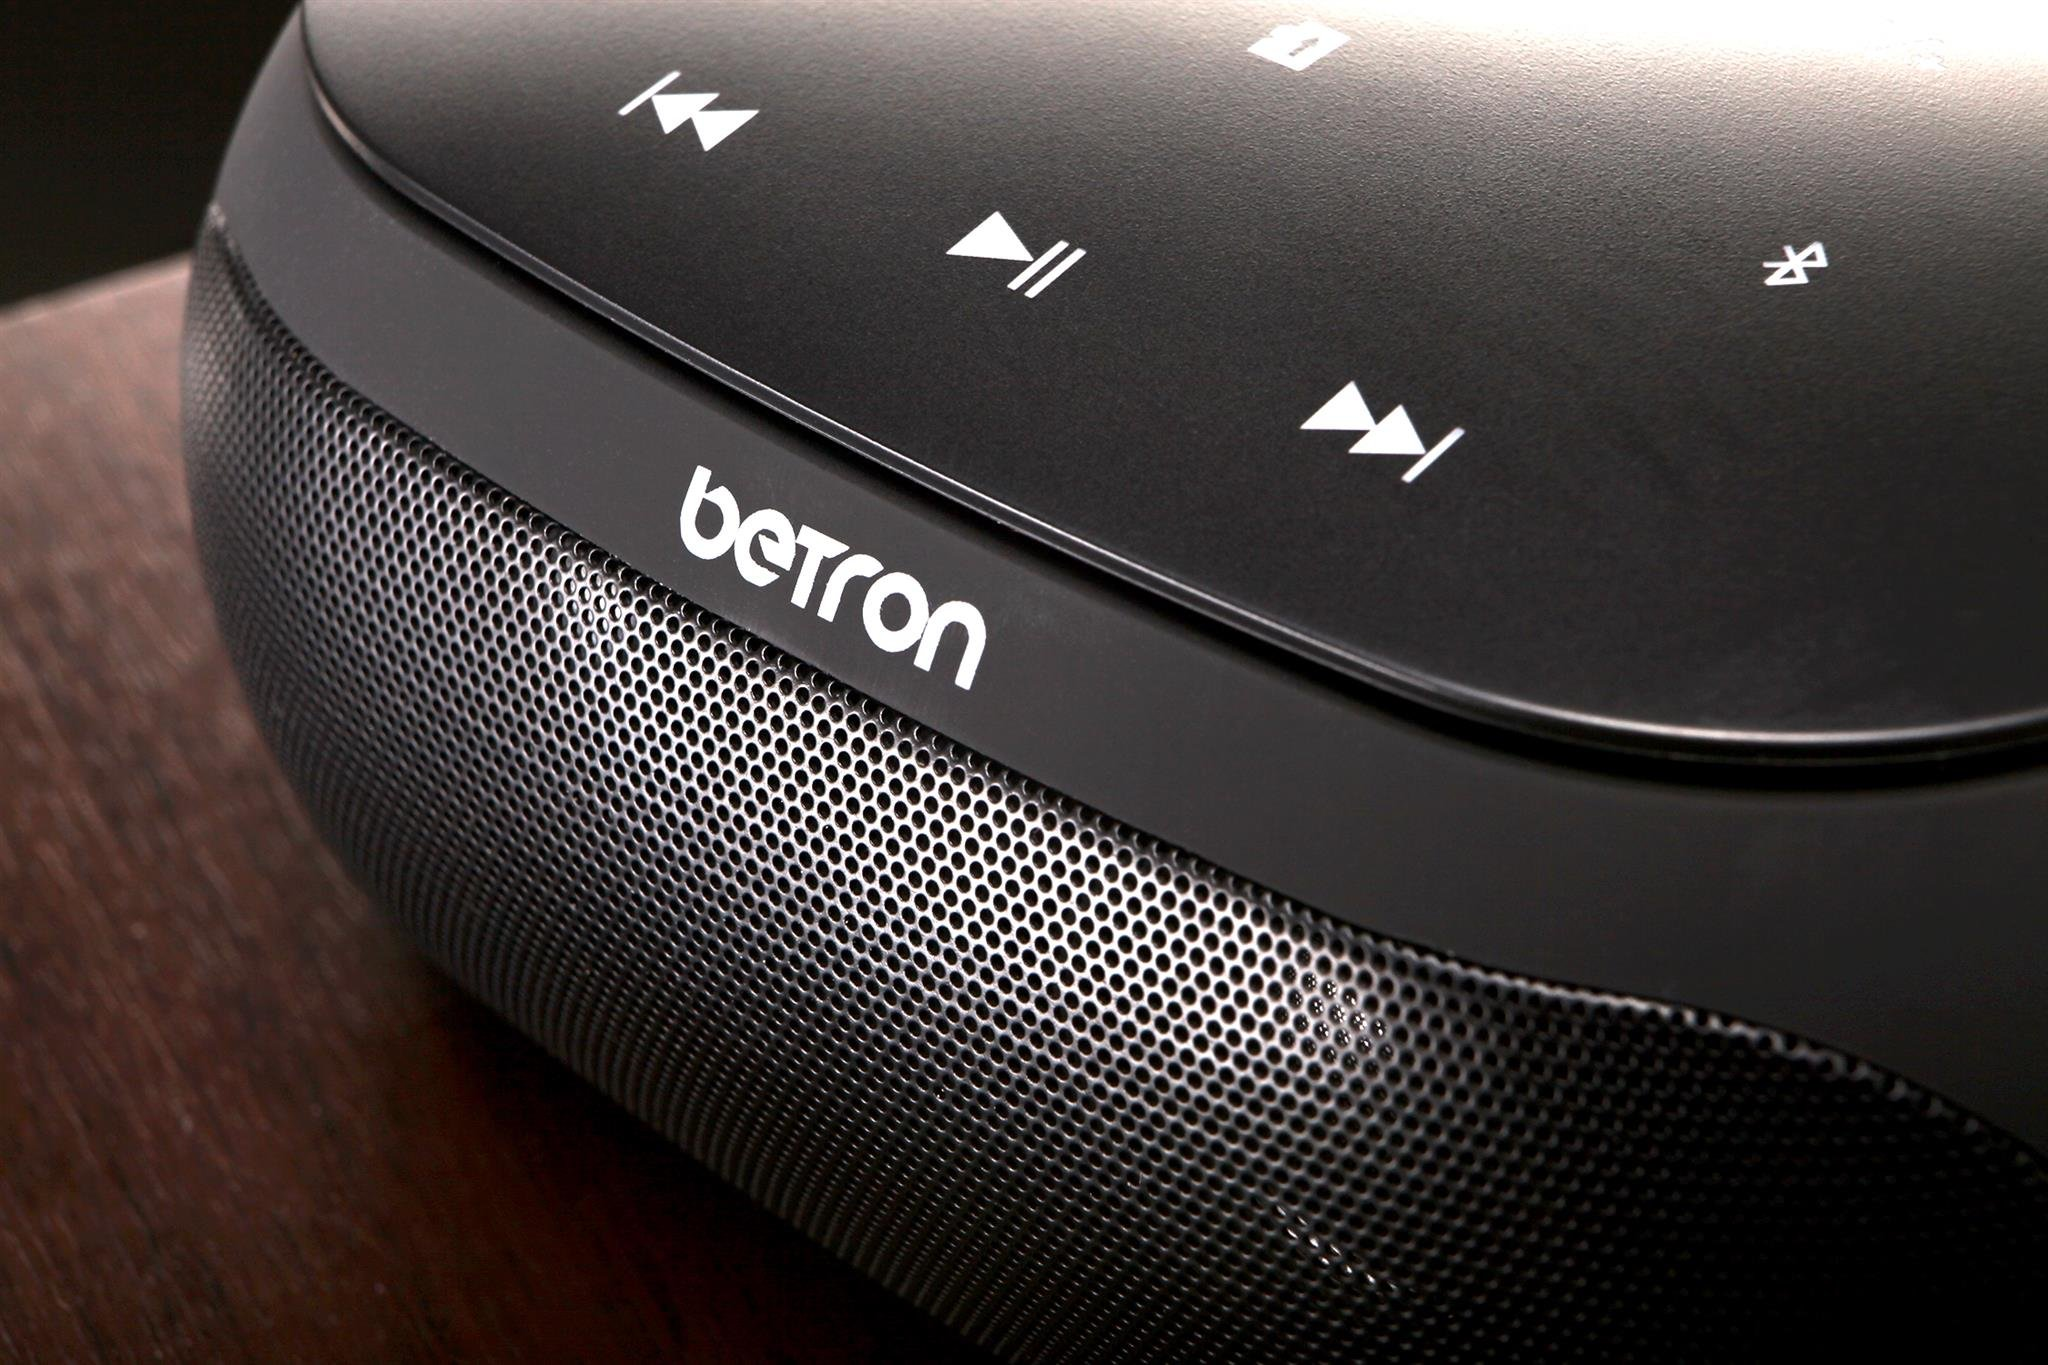 Betron NR200 Bluetooth Stereo Speaker, 9 Watt Dual Driver, Built in Microphone for Calls